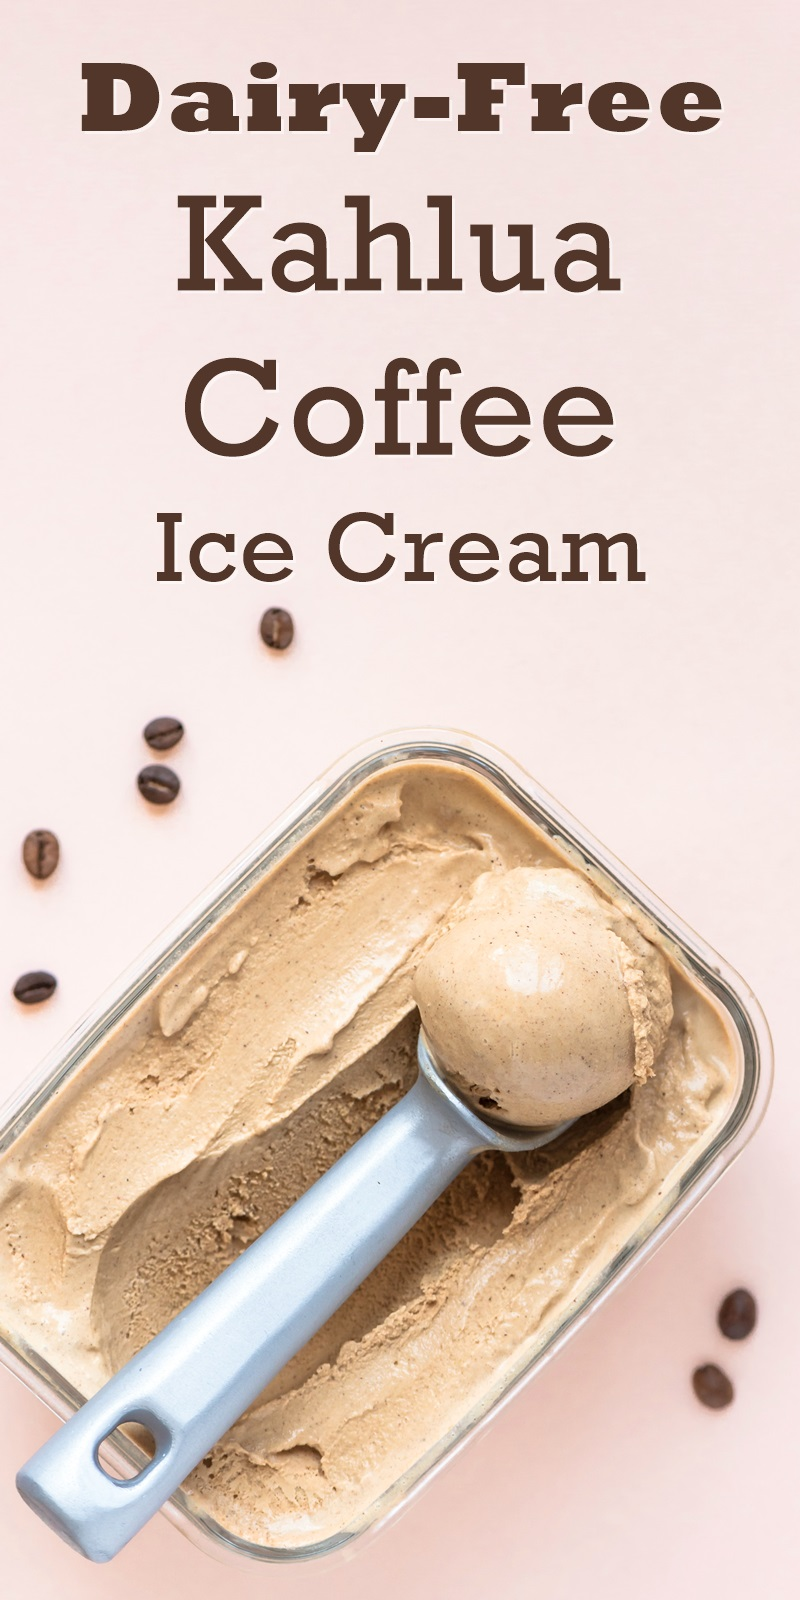 Dairy-Free Kahlua Coffee Ice Cream Recipe - a grown-up vegan & gluten-free frozen dessert that can be sweetened to taste! #veganicecream #coffeeicecream